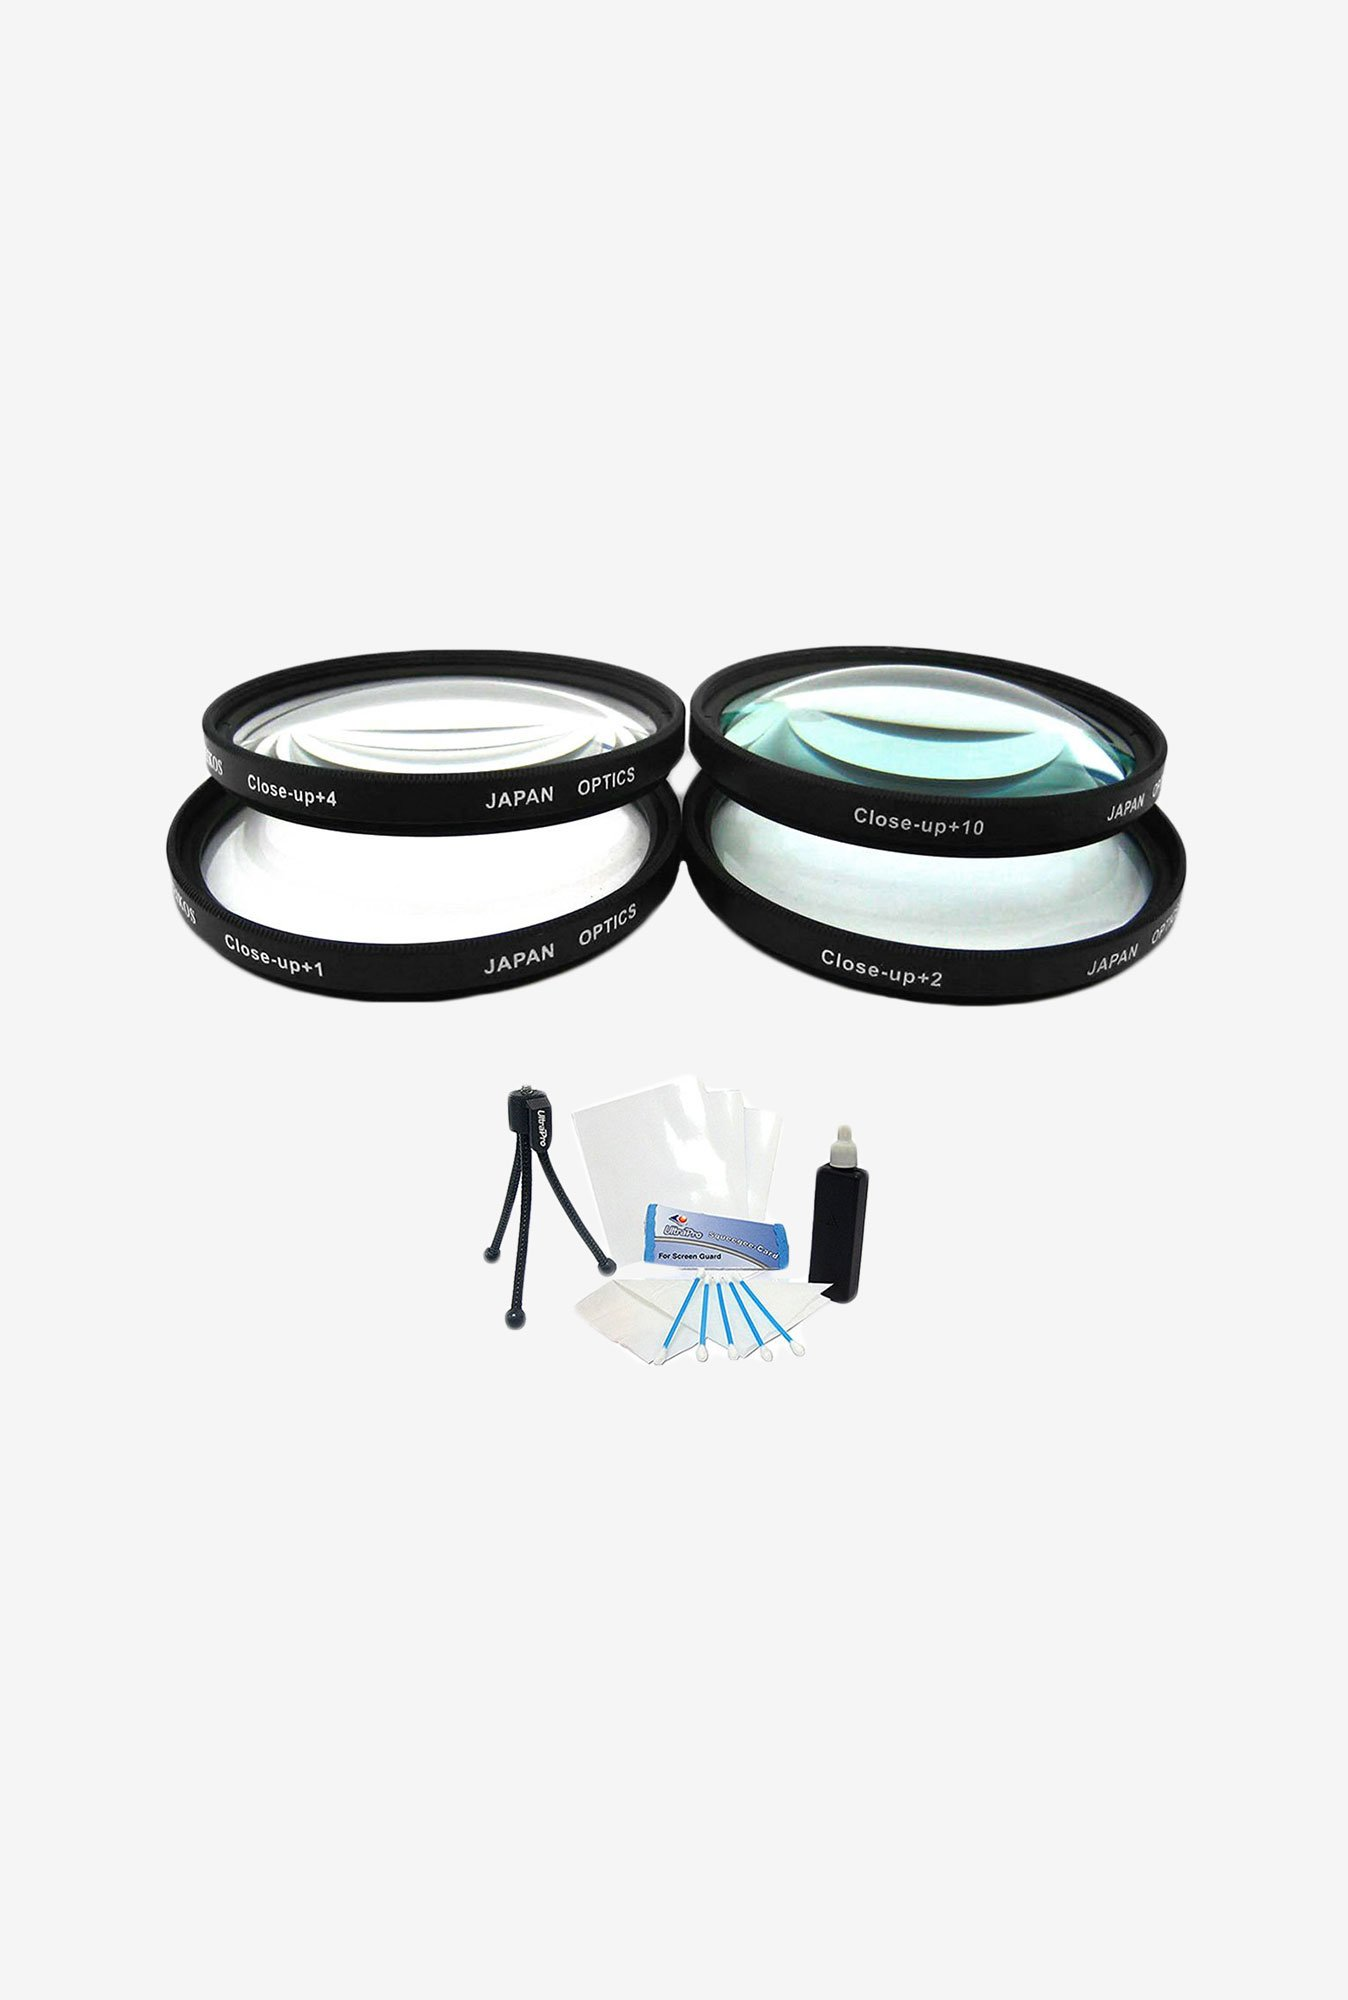 UltraPro 49 mm Digital High-Resolution Macro Filter (Black)